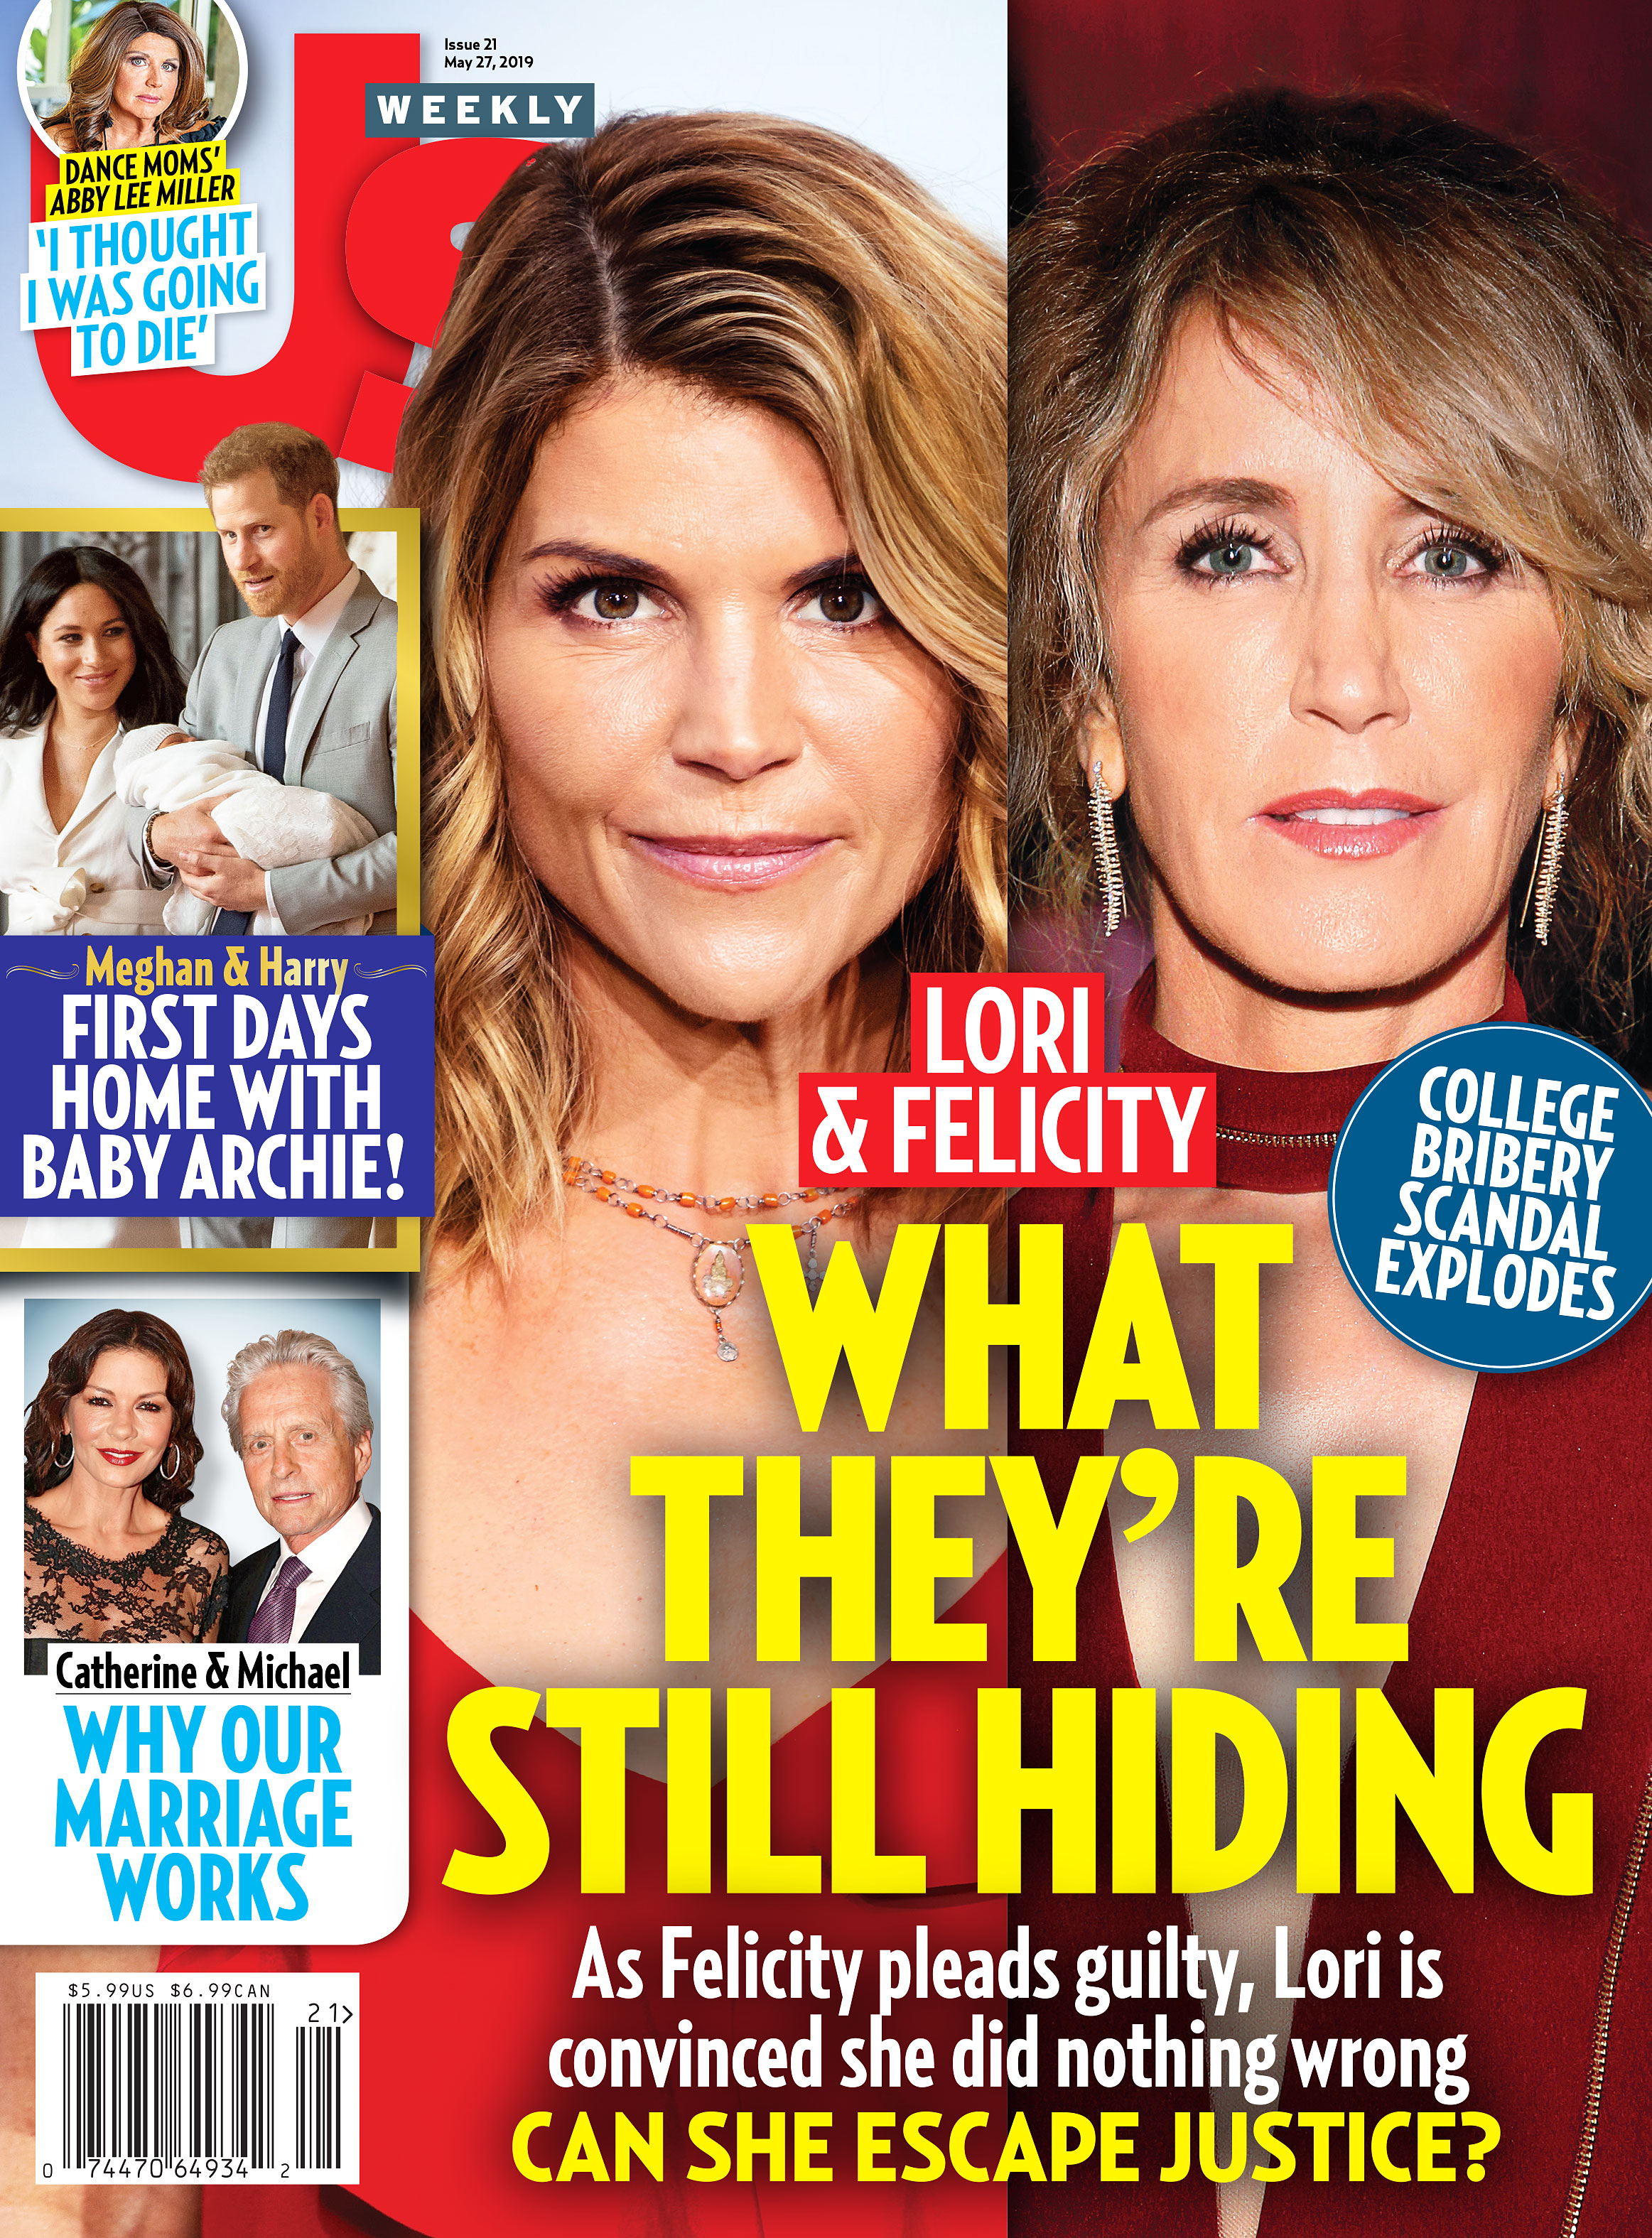 Us Weekly Cover 2119 Lori Loughlin Felicity Huffman